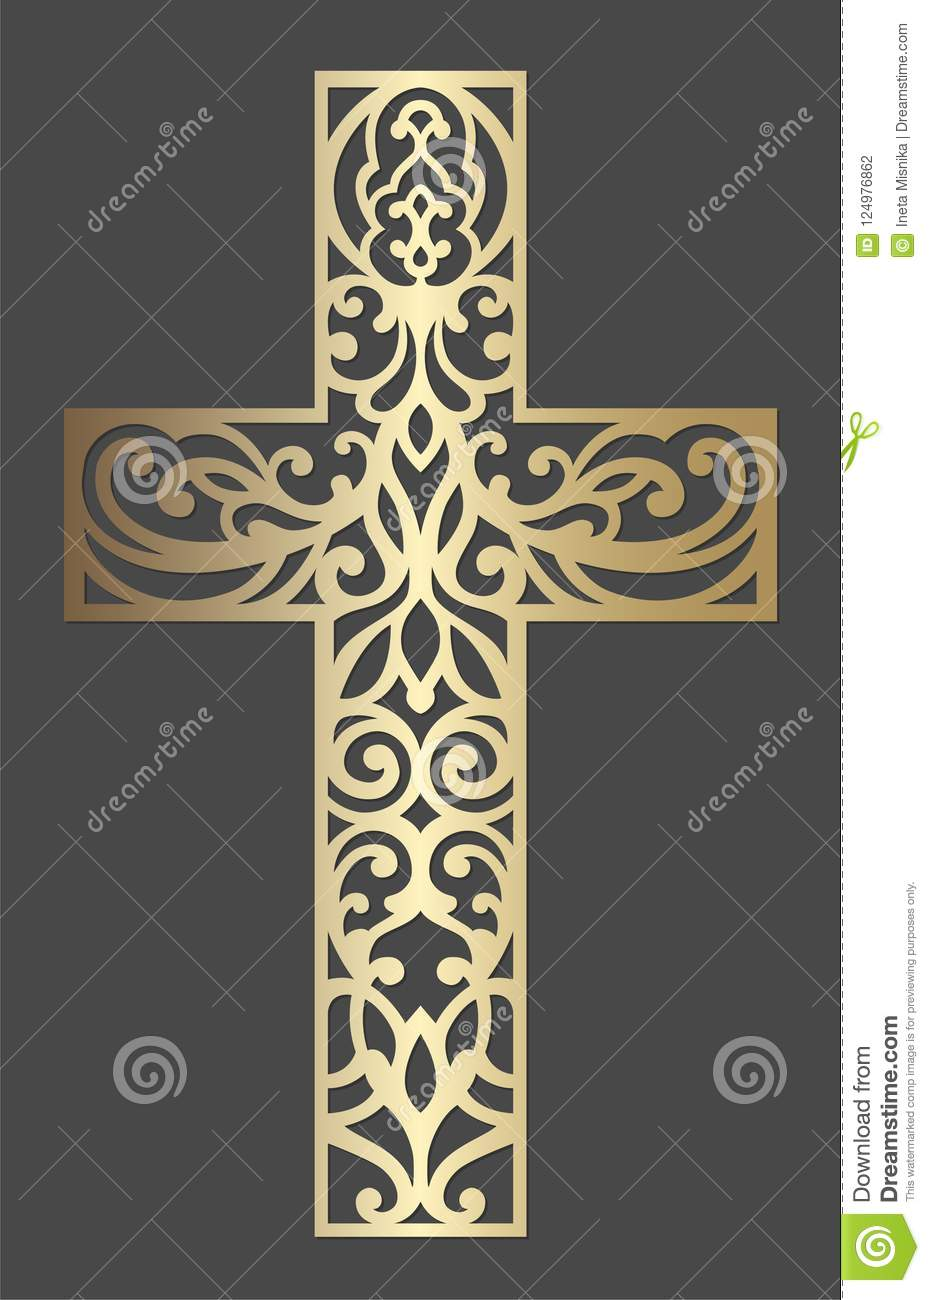 Laser Cut Cross Design  Ornamental Design Template  Stock Vector